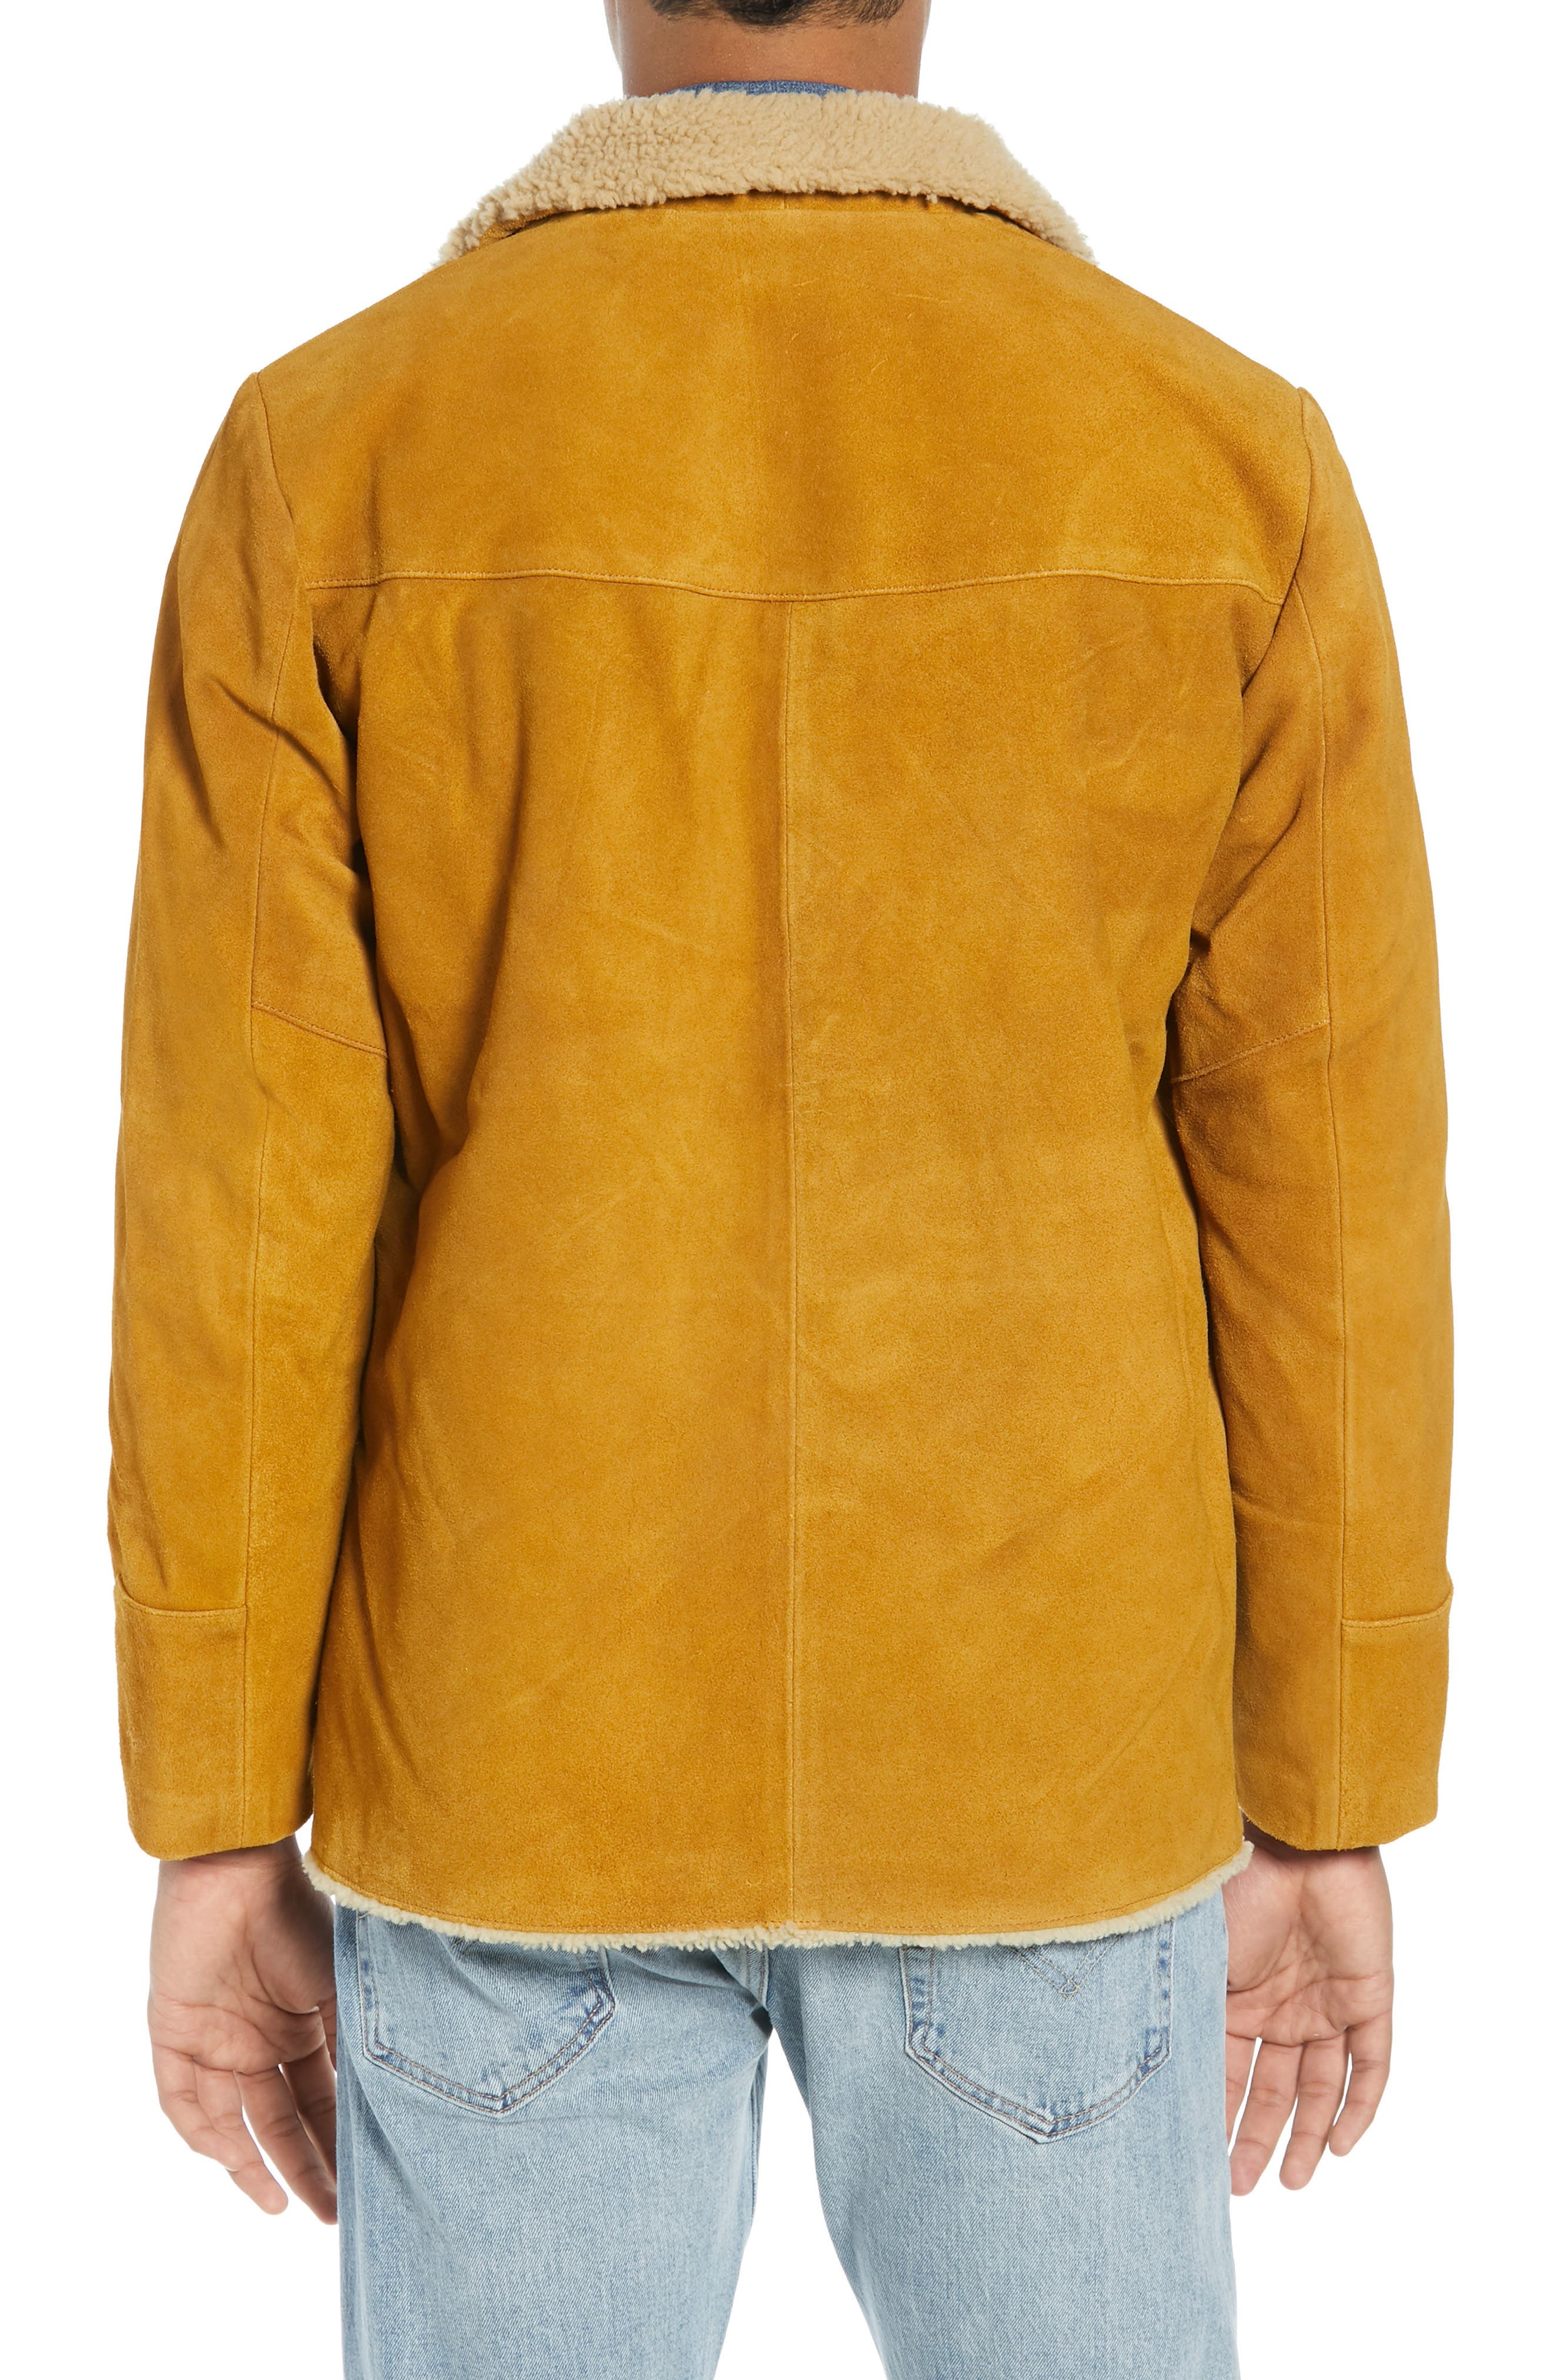 Levi's<sup>®</sup> Fleece Lined Suede Jacket,                             Alternate thumbnail 2, color,                             250